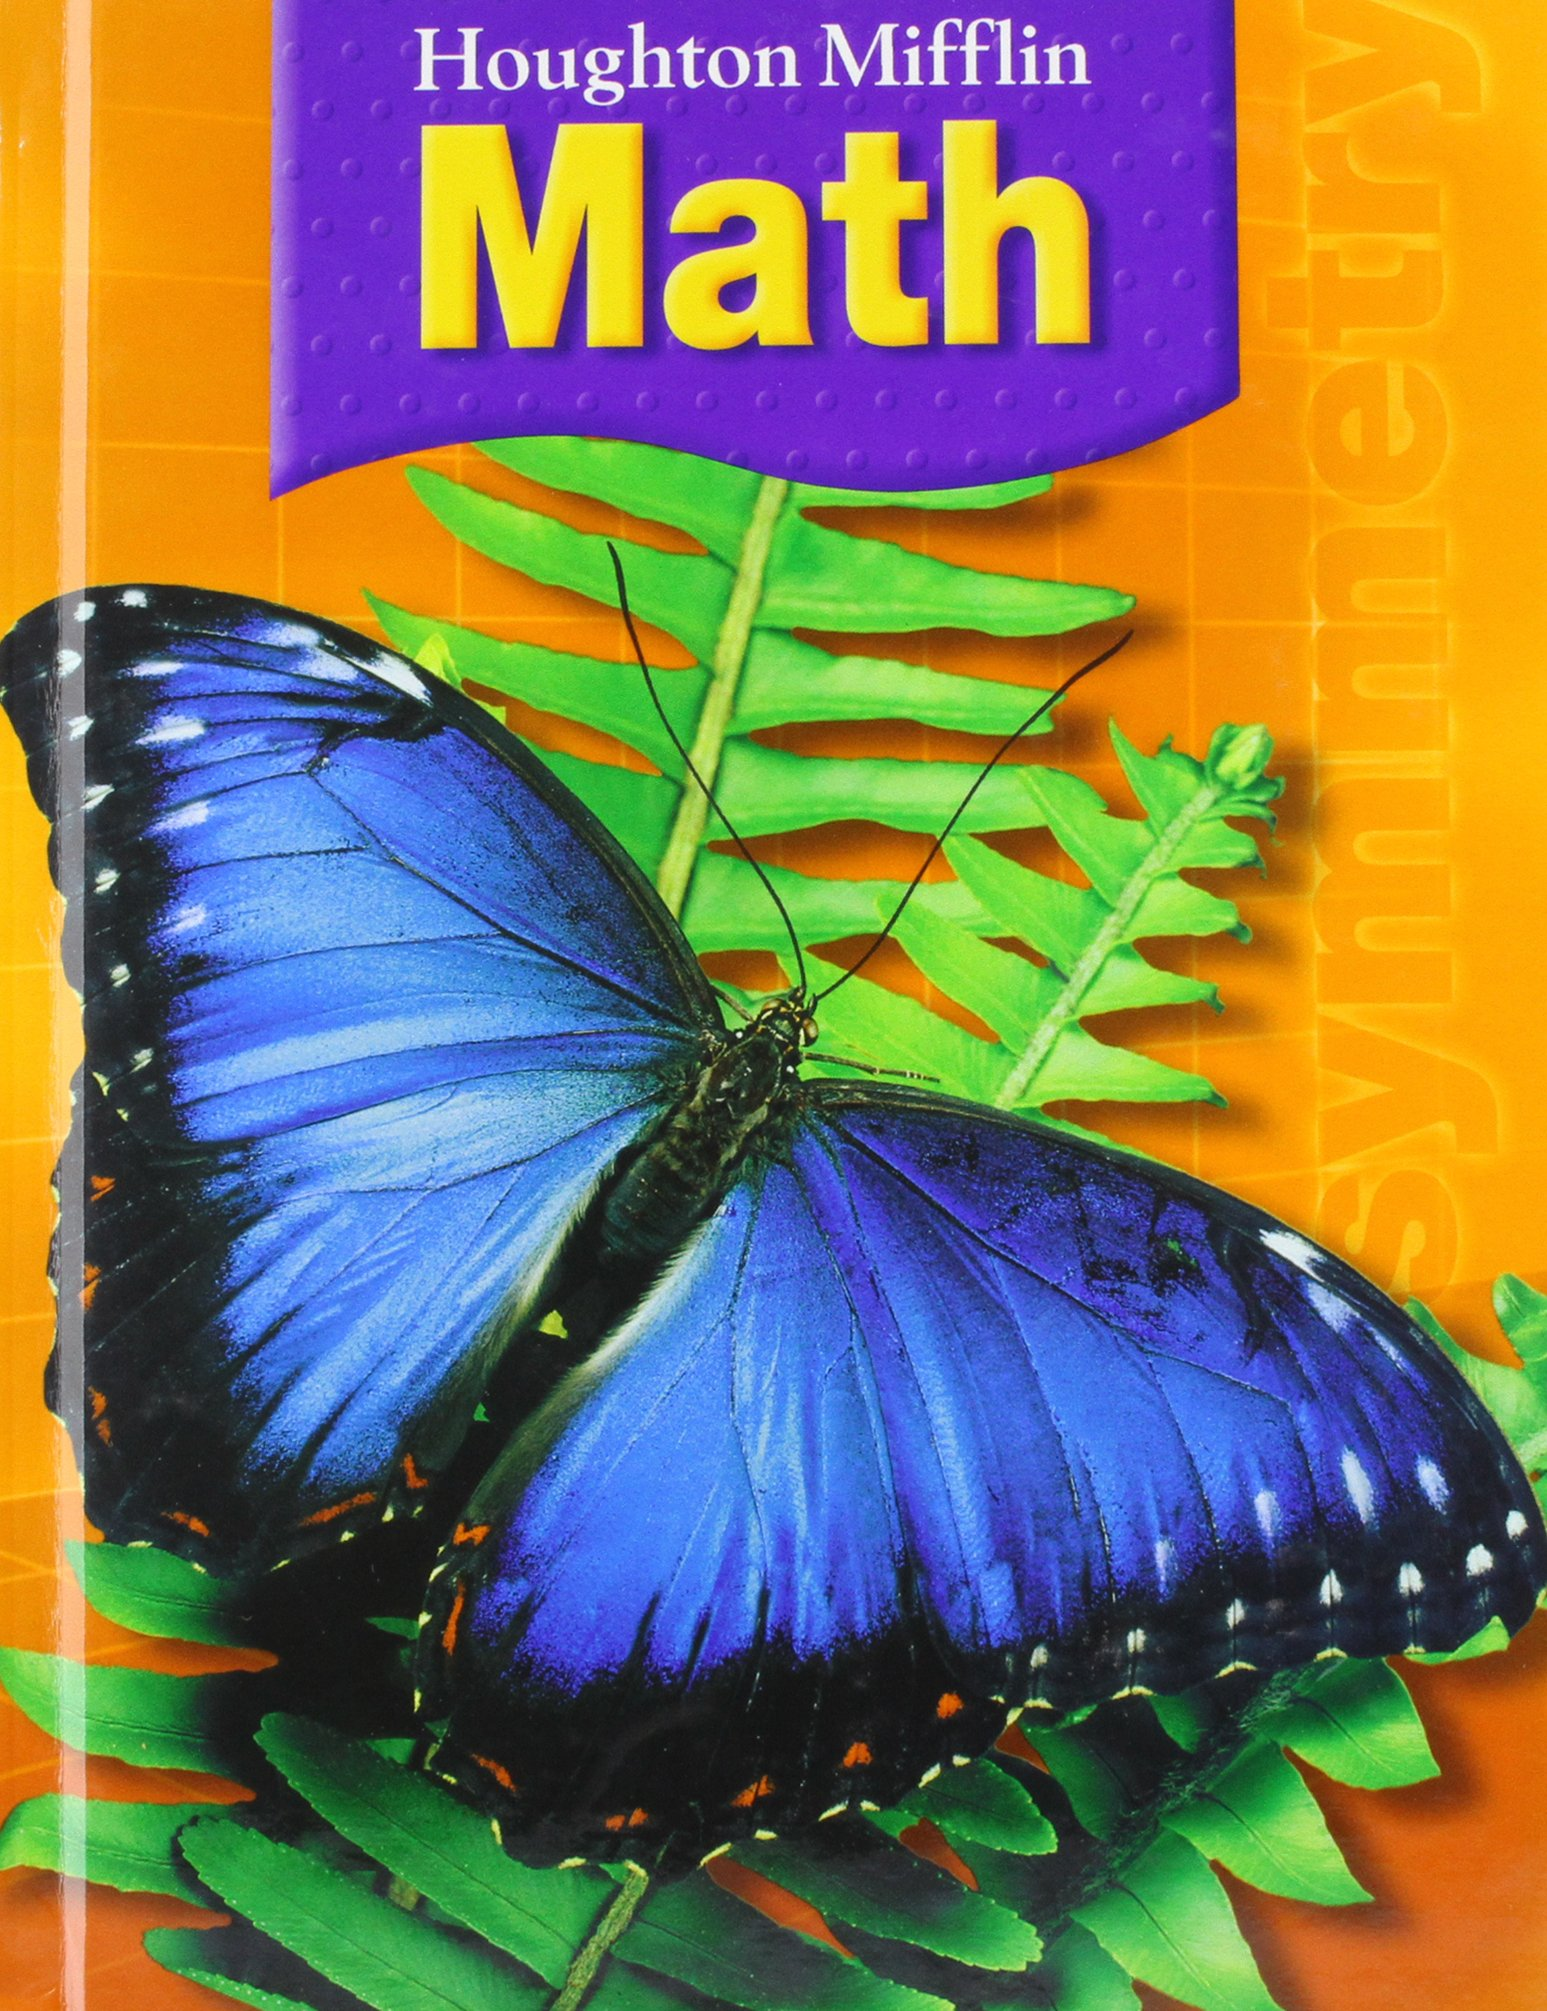 Worksheets Houghton Mifflin Math Worksheets houghton mifflin math student book grade 3 2007 9780618590933 amazon com books